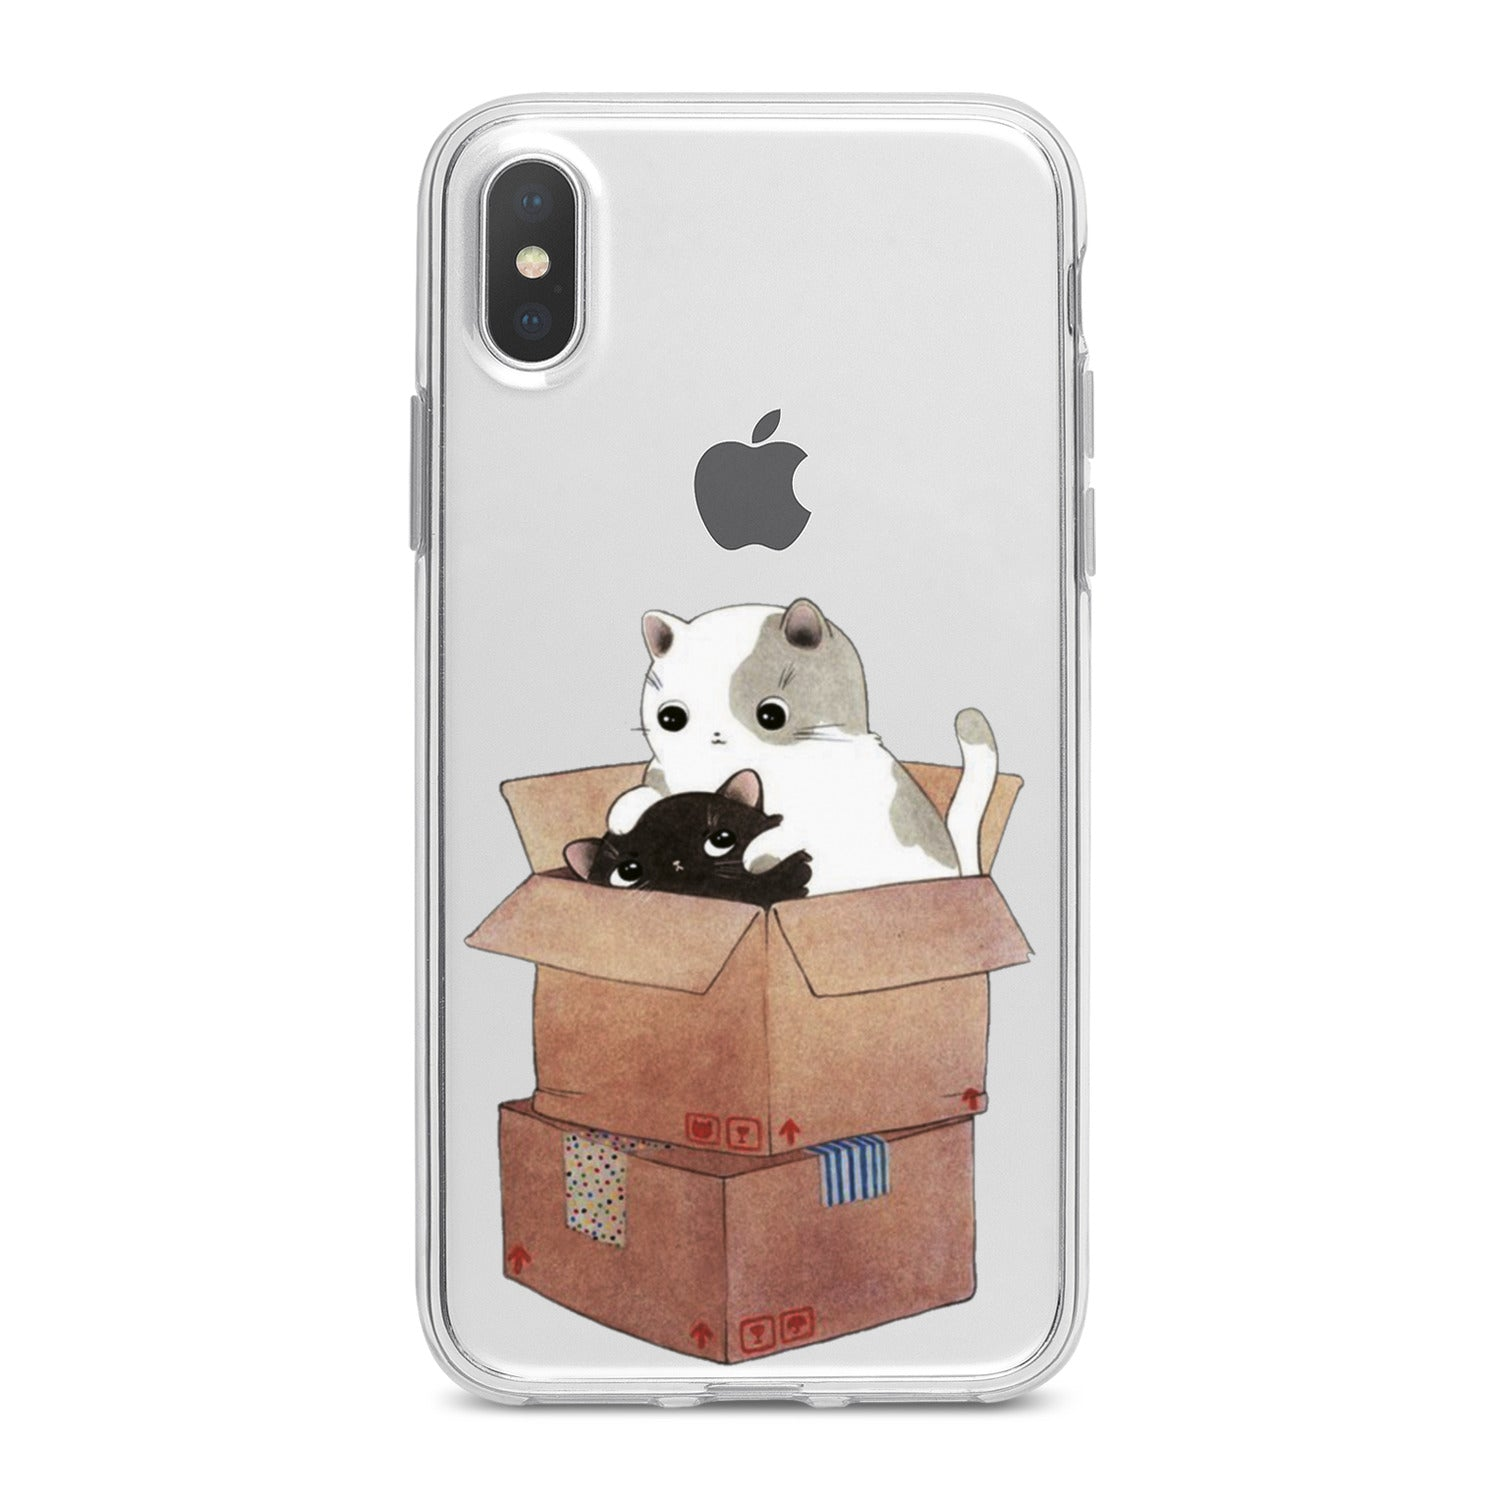 Lex Altern Kawaii Cat Phone Case for your iPhone & Android phone.